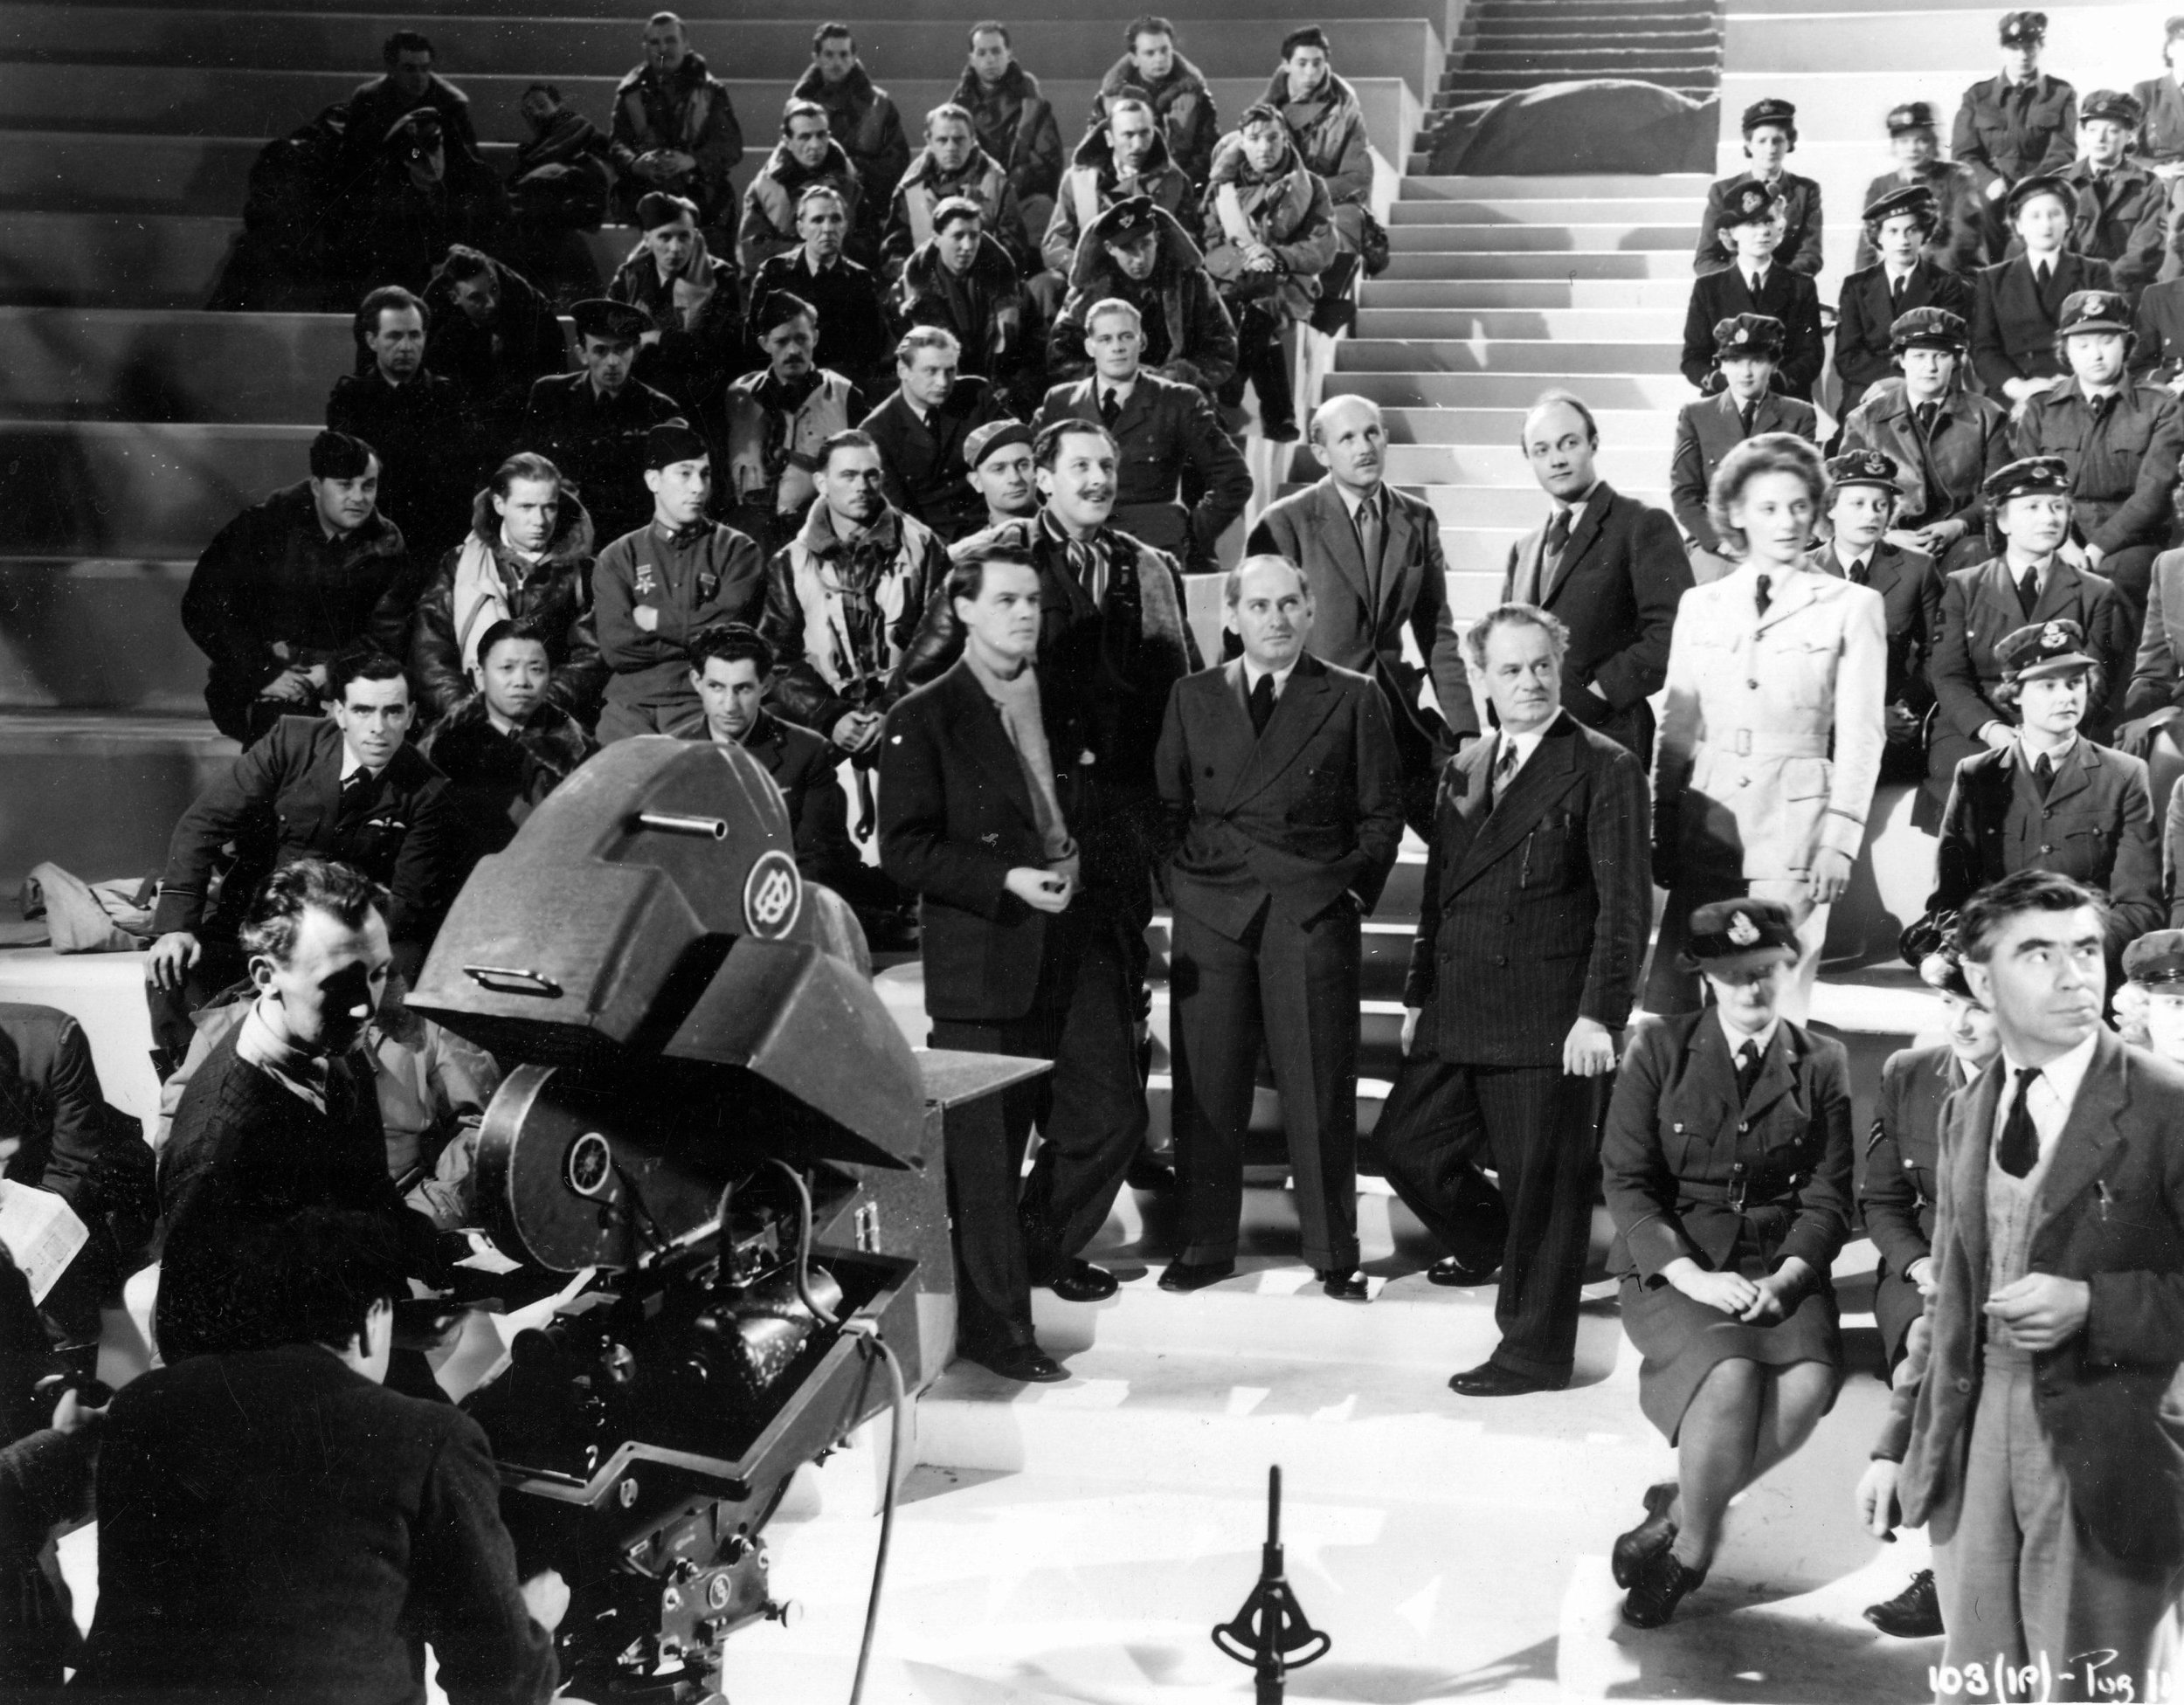 Emeric Pressburger, Michael Powell (centre) with the crew and cast